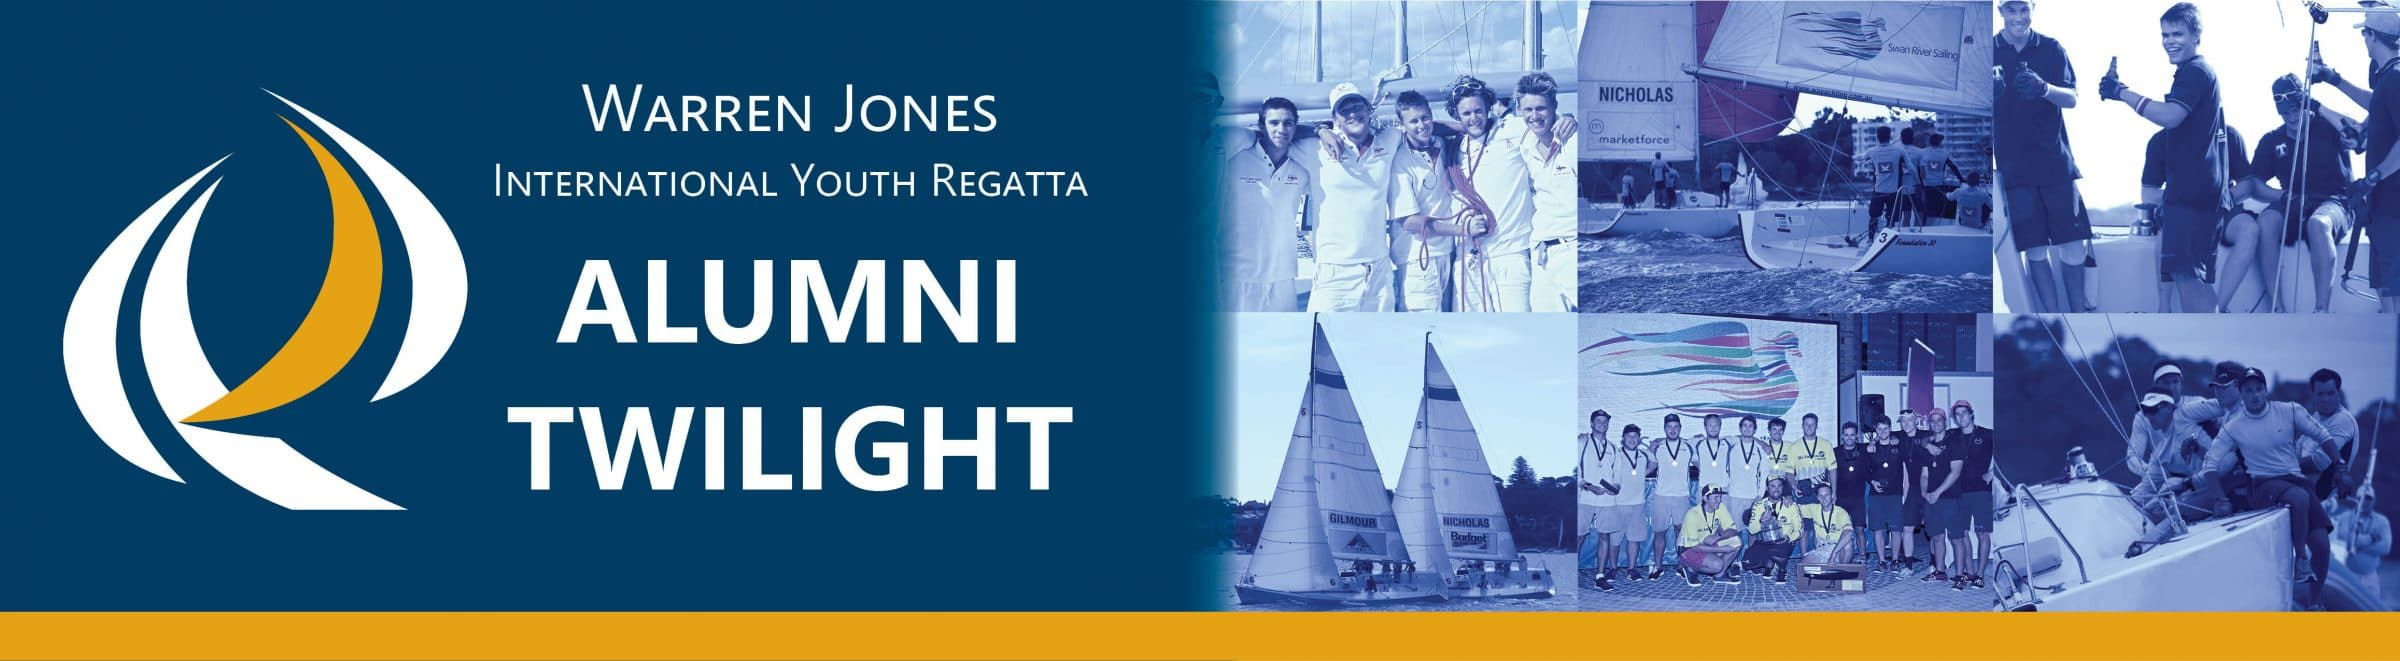 warren jones alumni twilight event for past competitors at the royal perth yacht club, hosted by swan river sailing